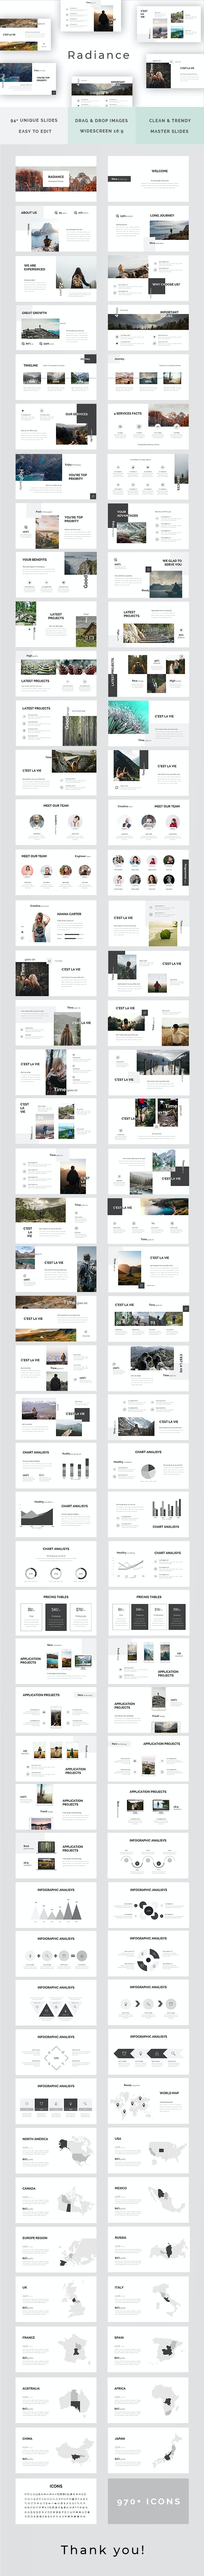 Radiance Powerpoint Template - PowerPoint Templates Presentation Templates